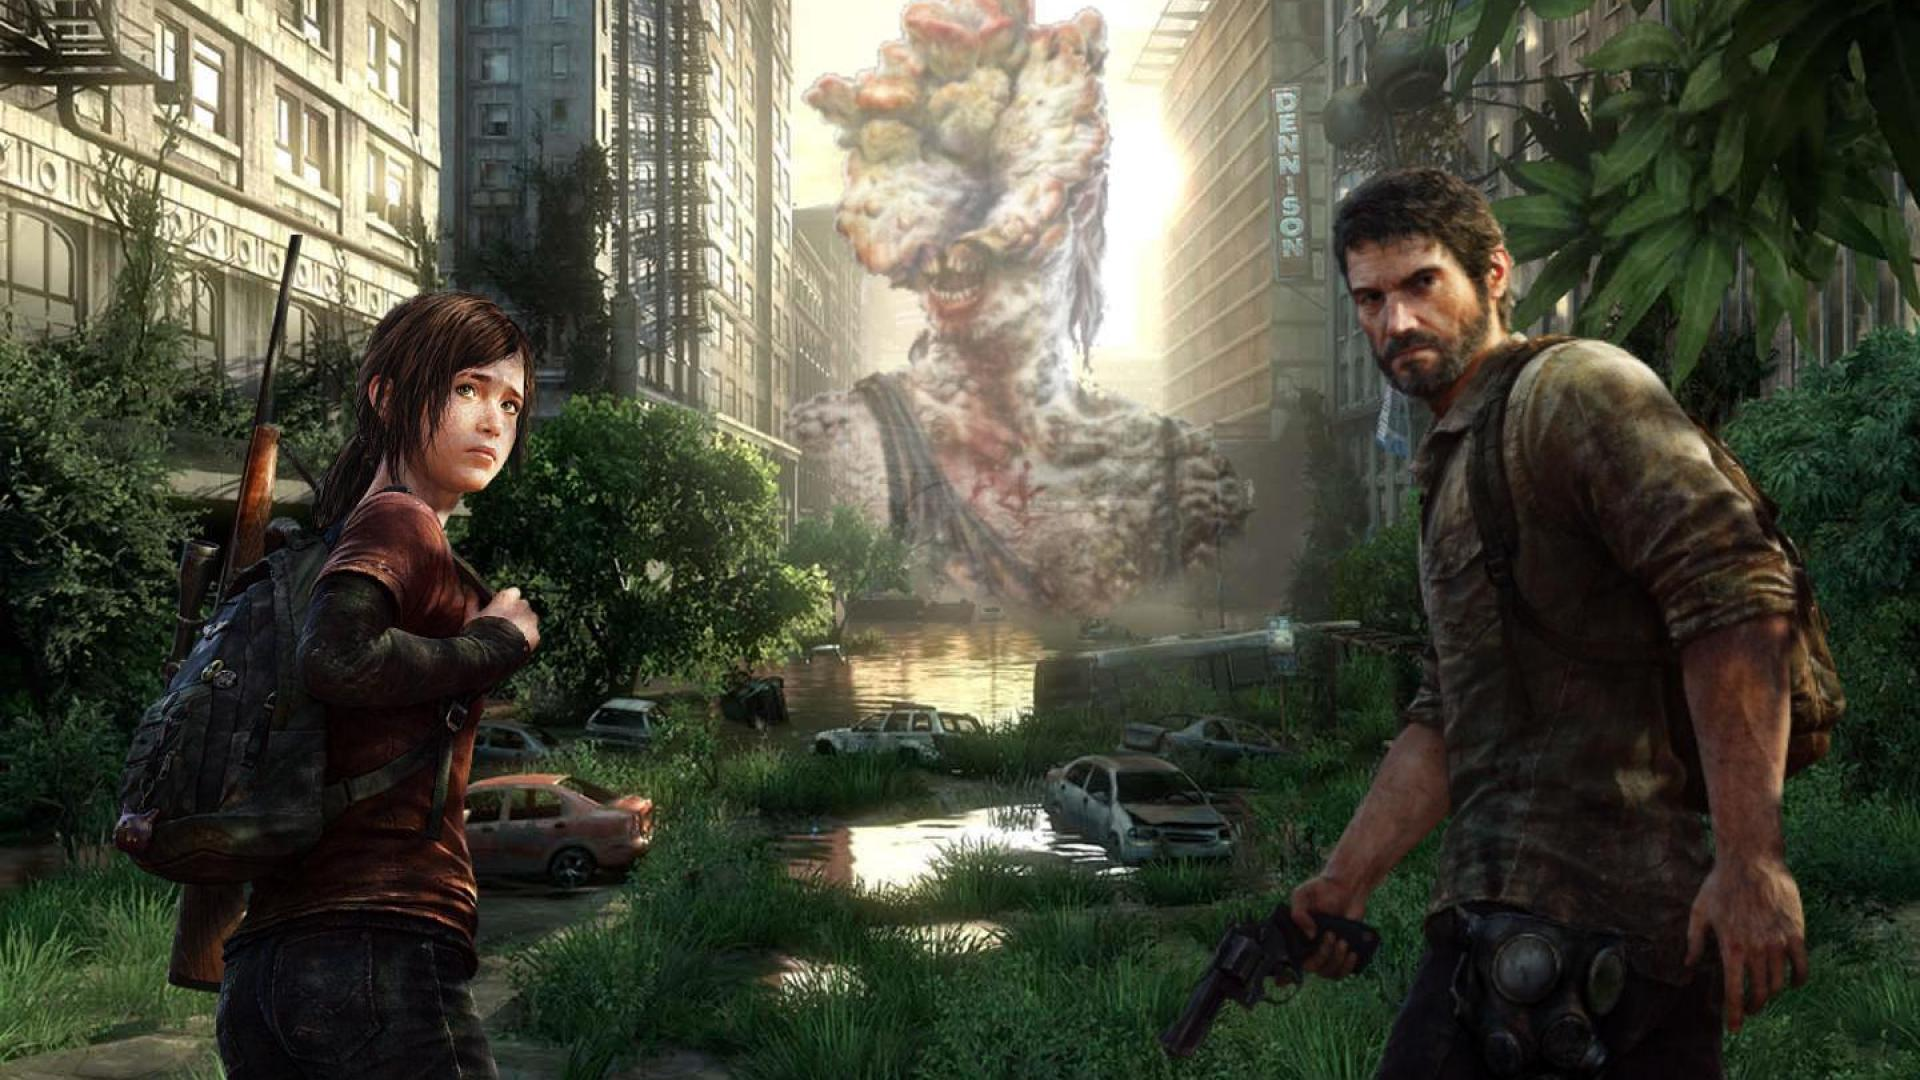 The Last of Us Wallpapers | Best Wallpapers